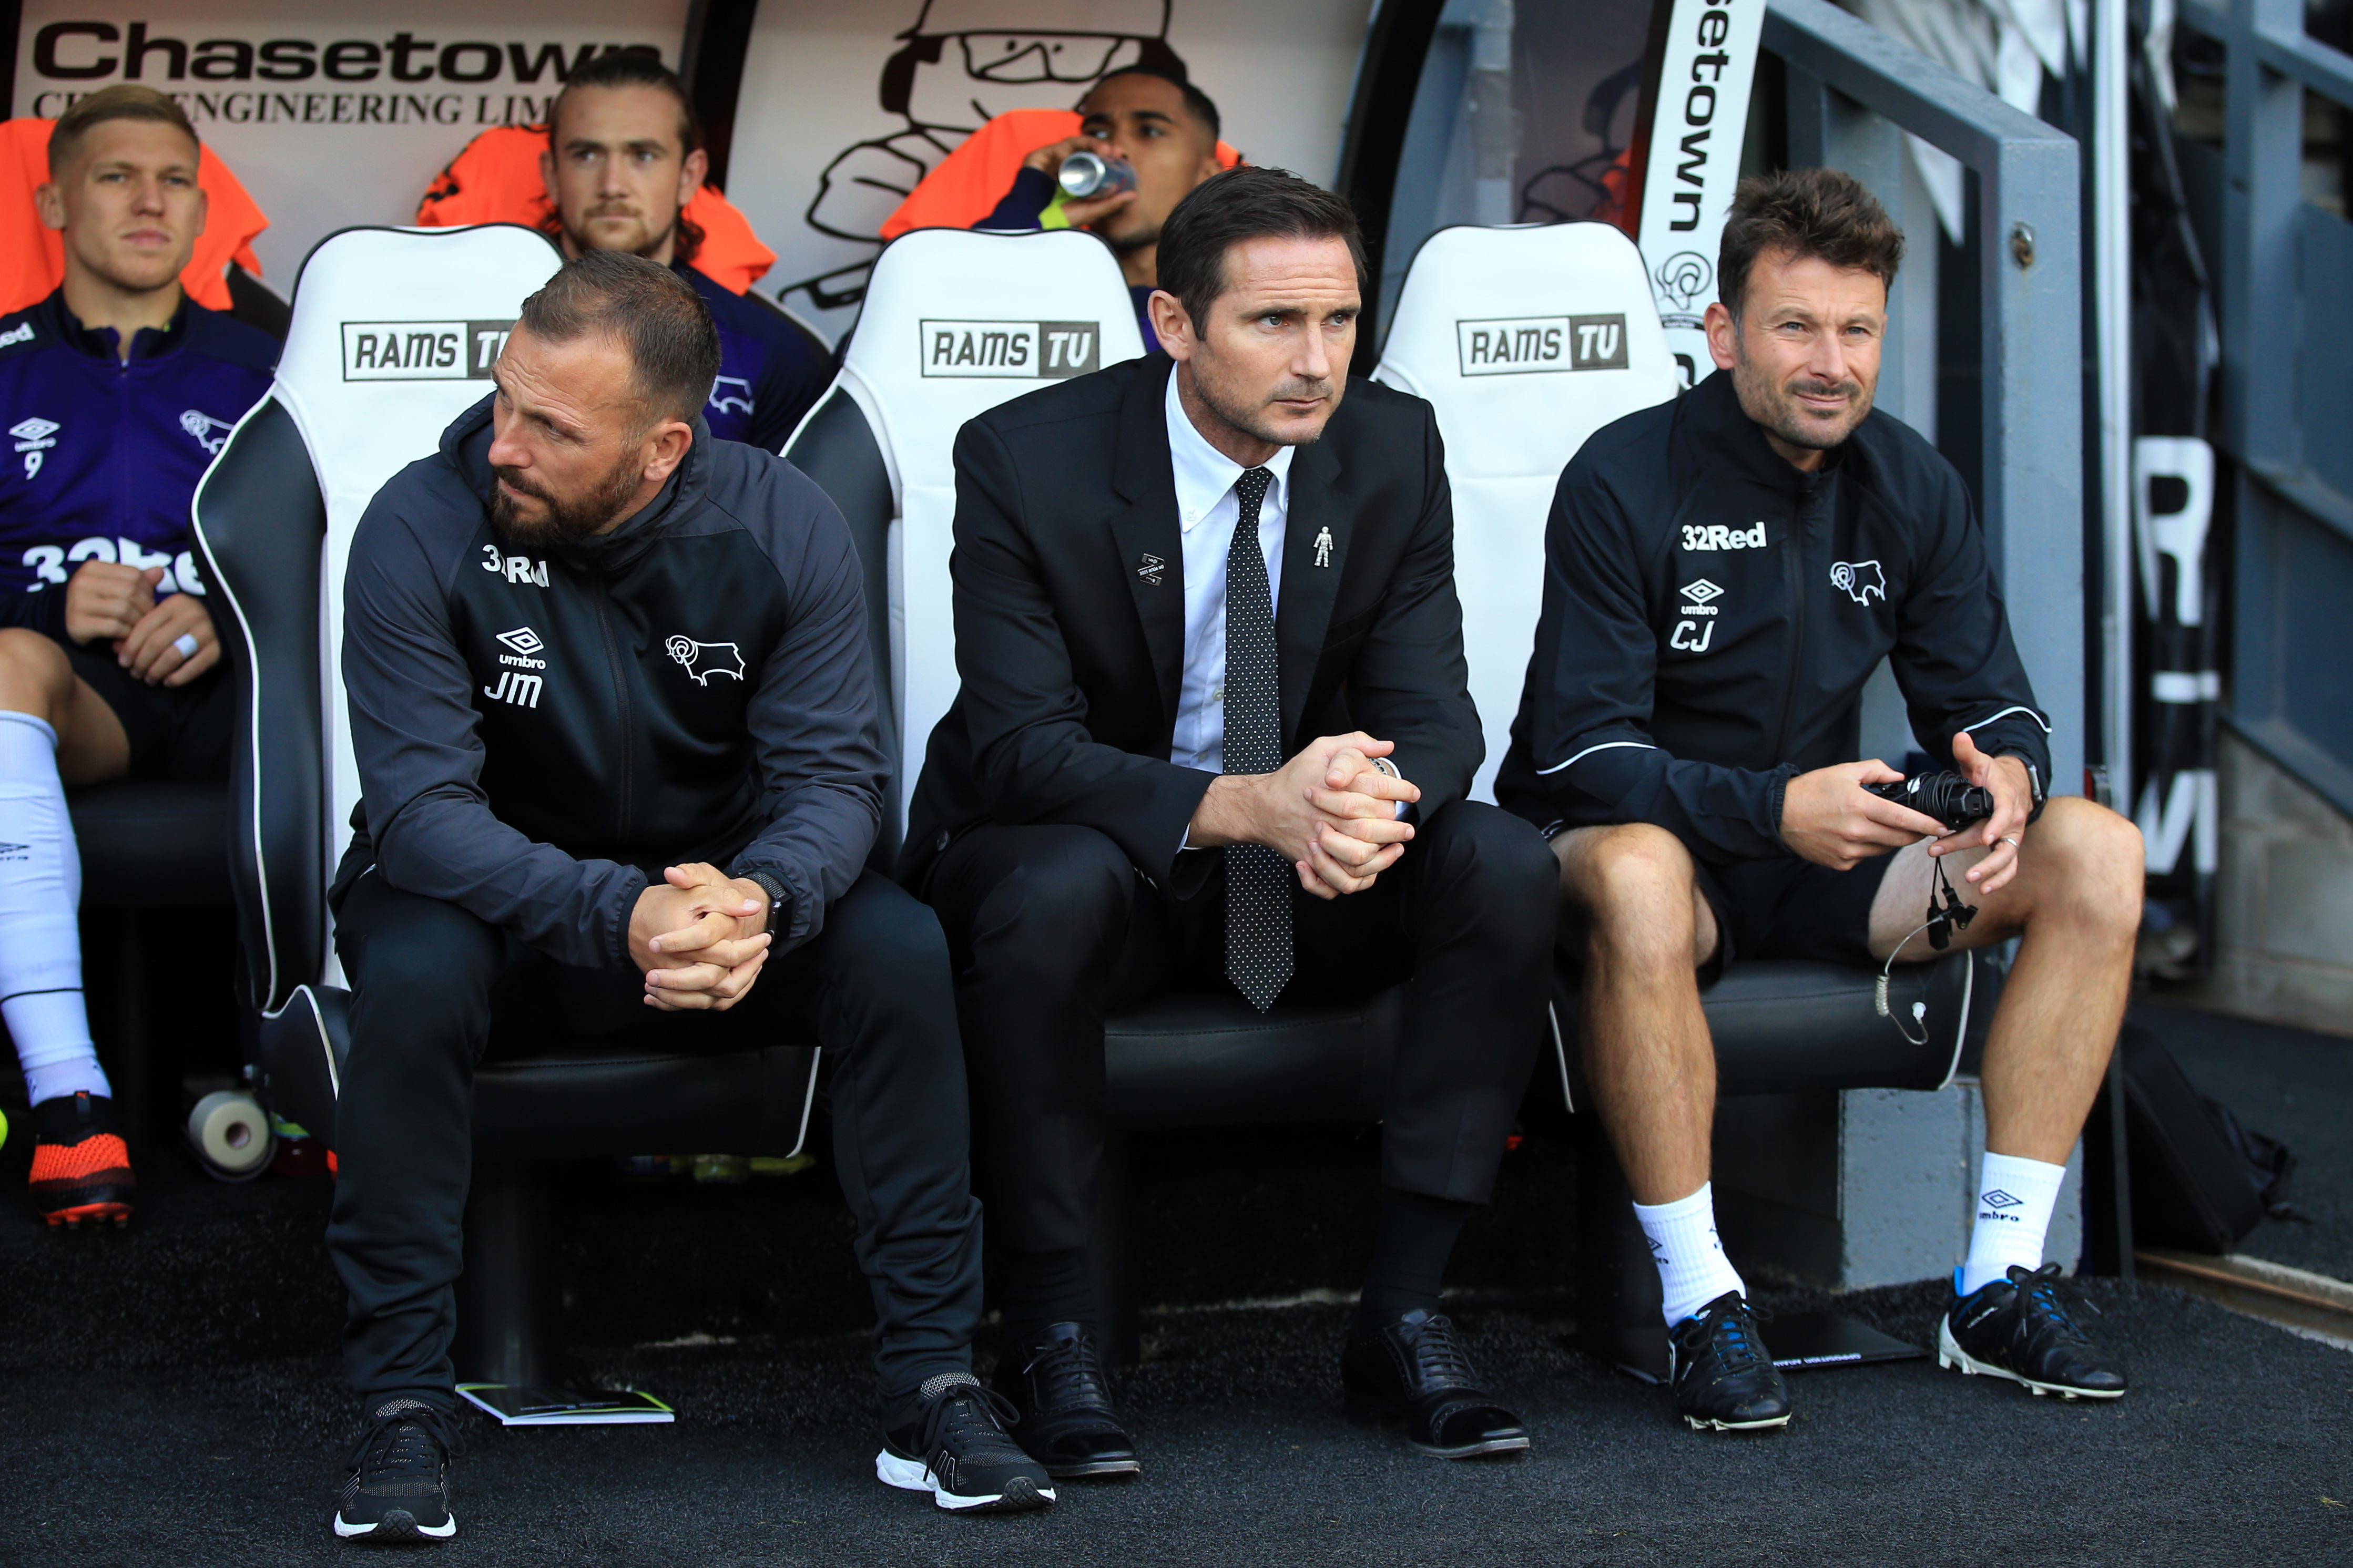 Derby County owner Mel Morris did not expect to lose Lampard to Chelsea so soon